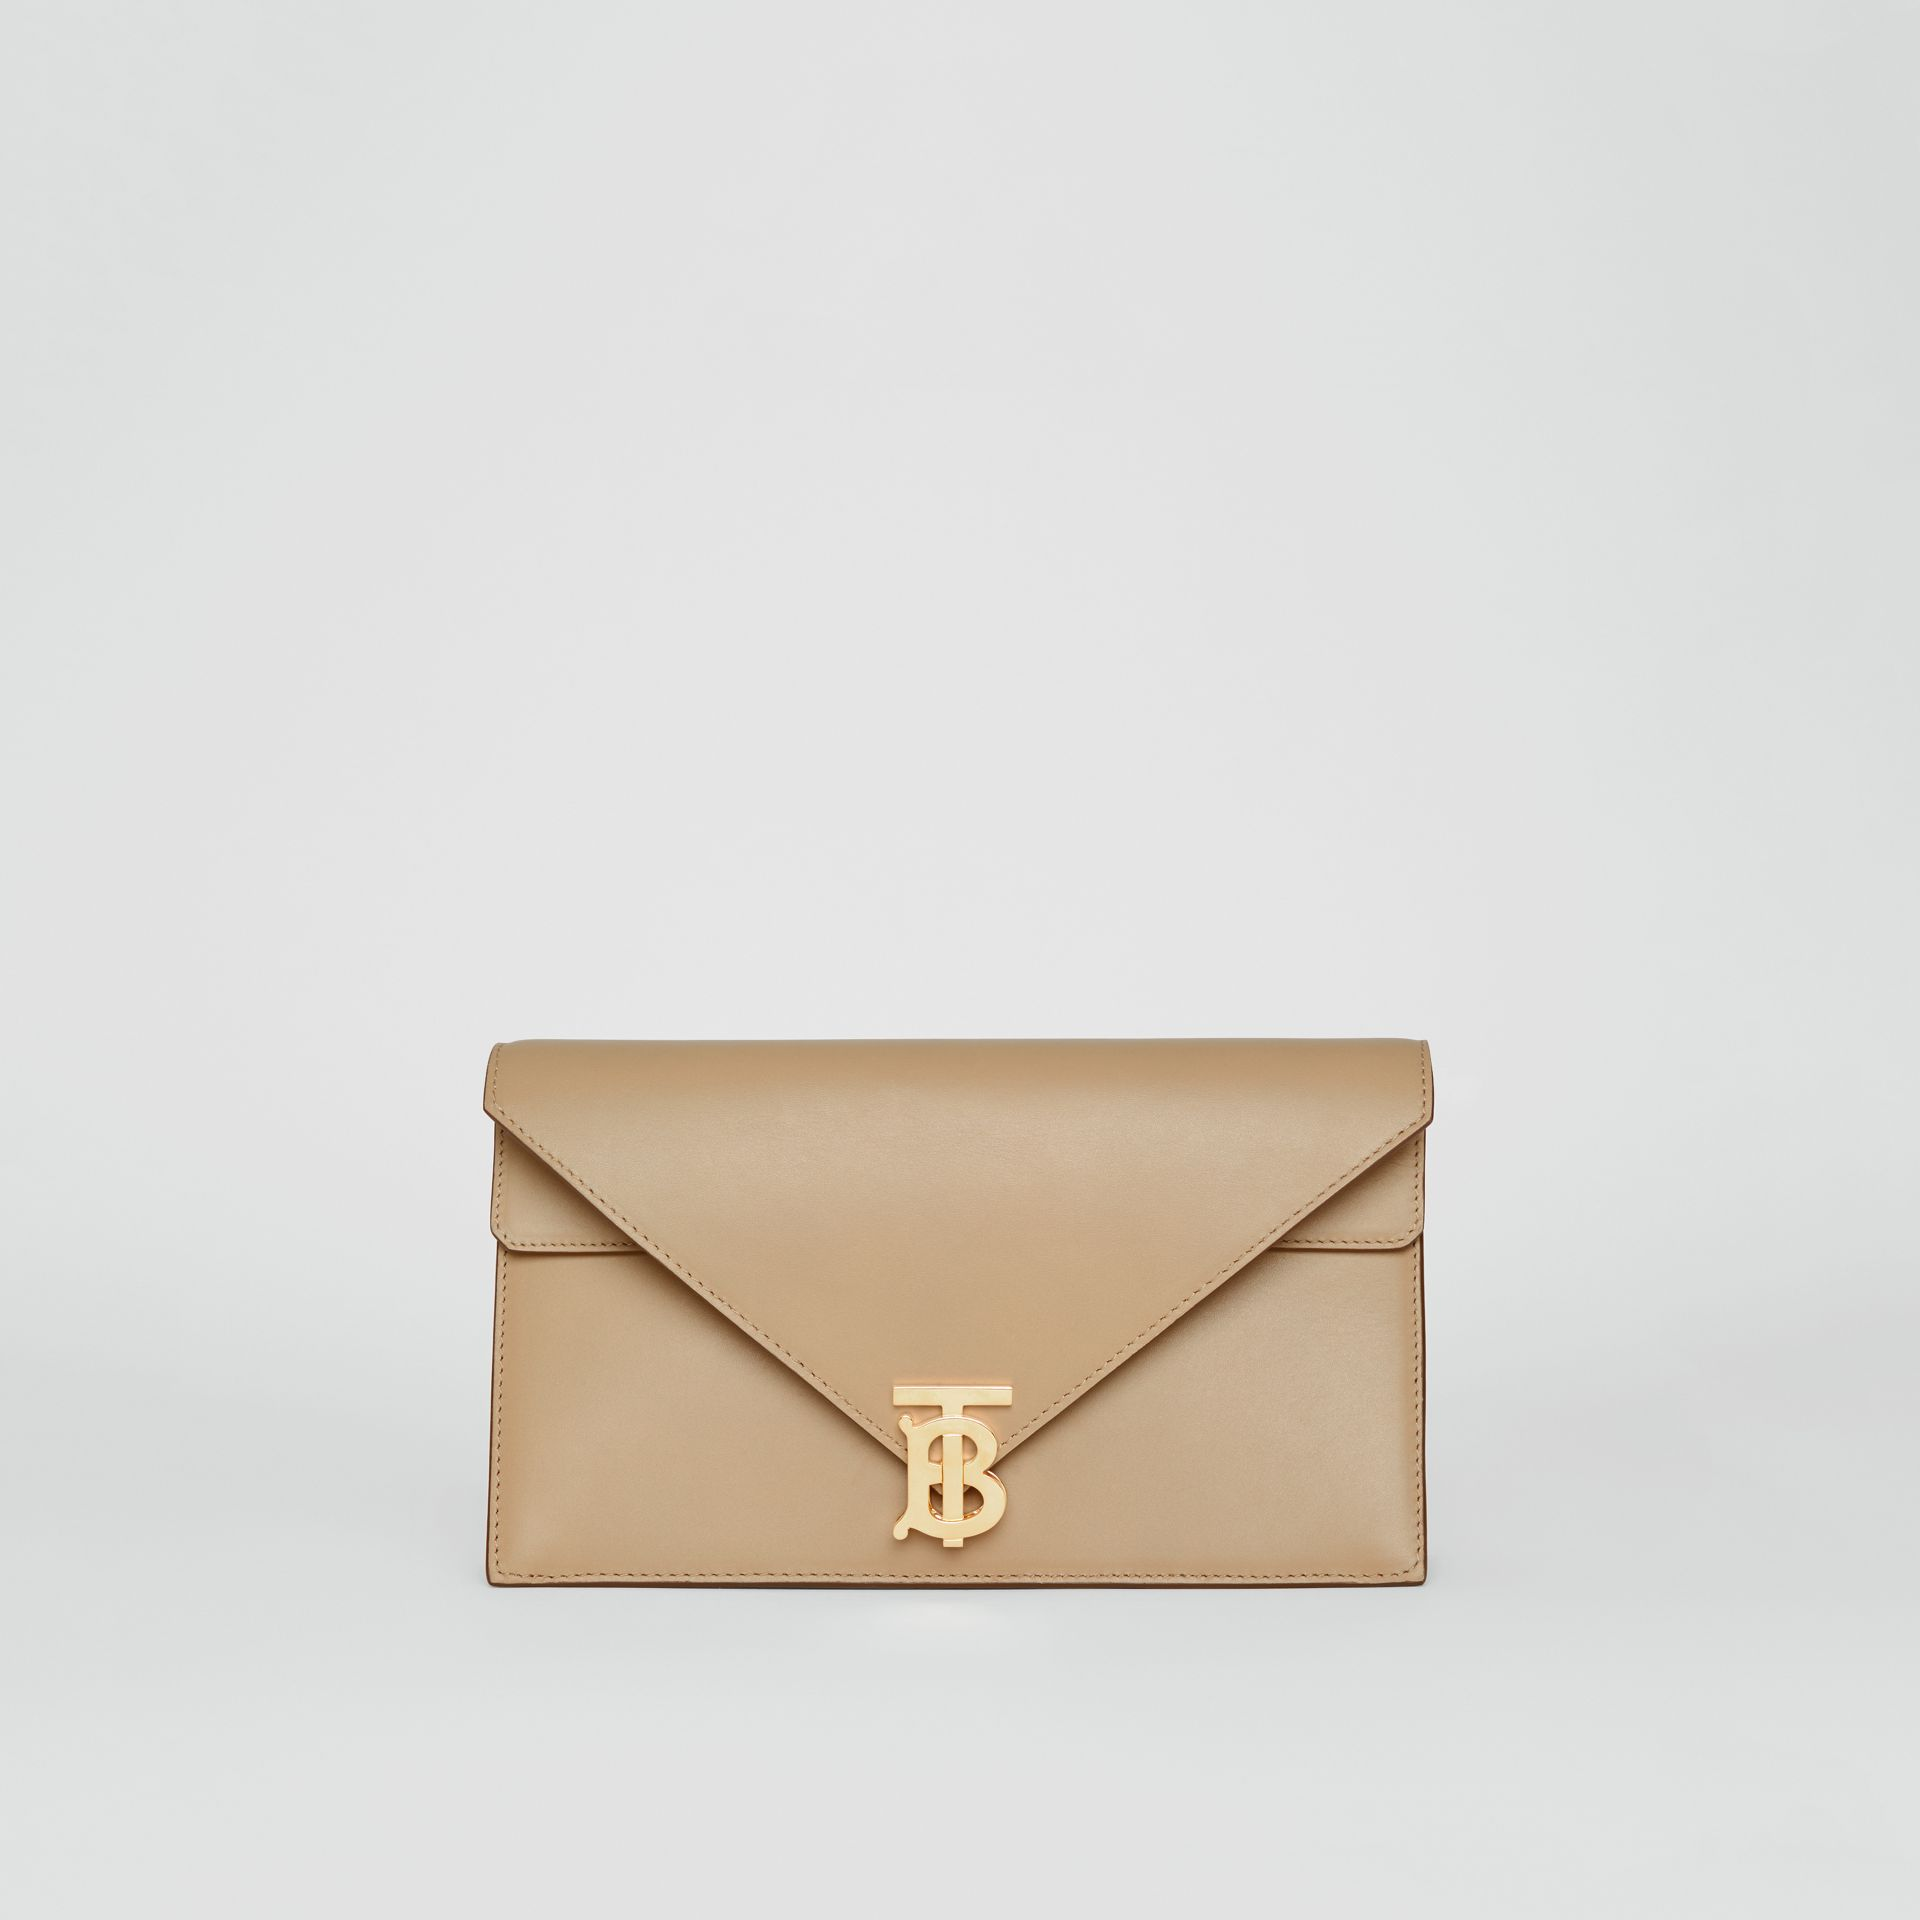 Small Leather TB Envelope Clutch in Honey - Women | Burberry - gallery image 0